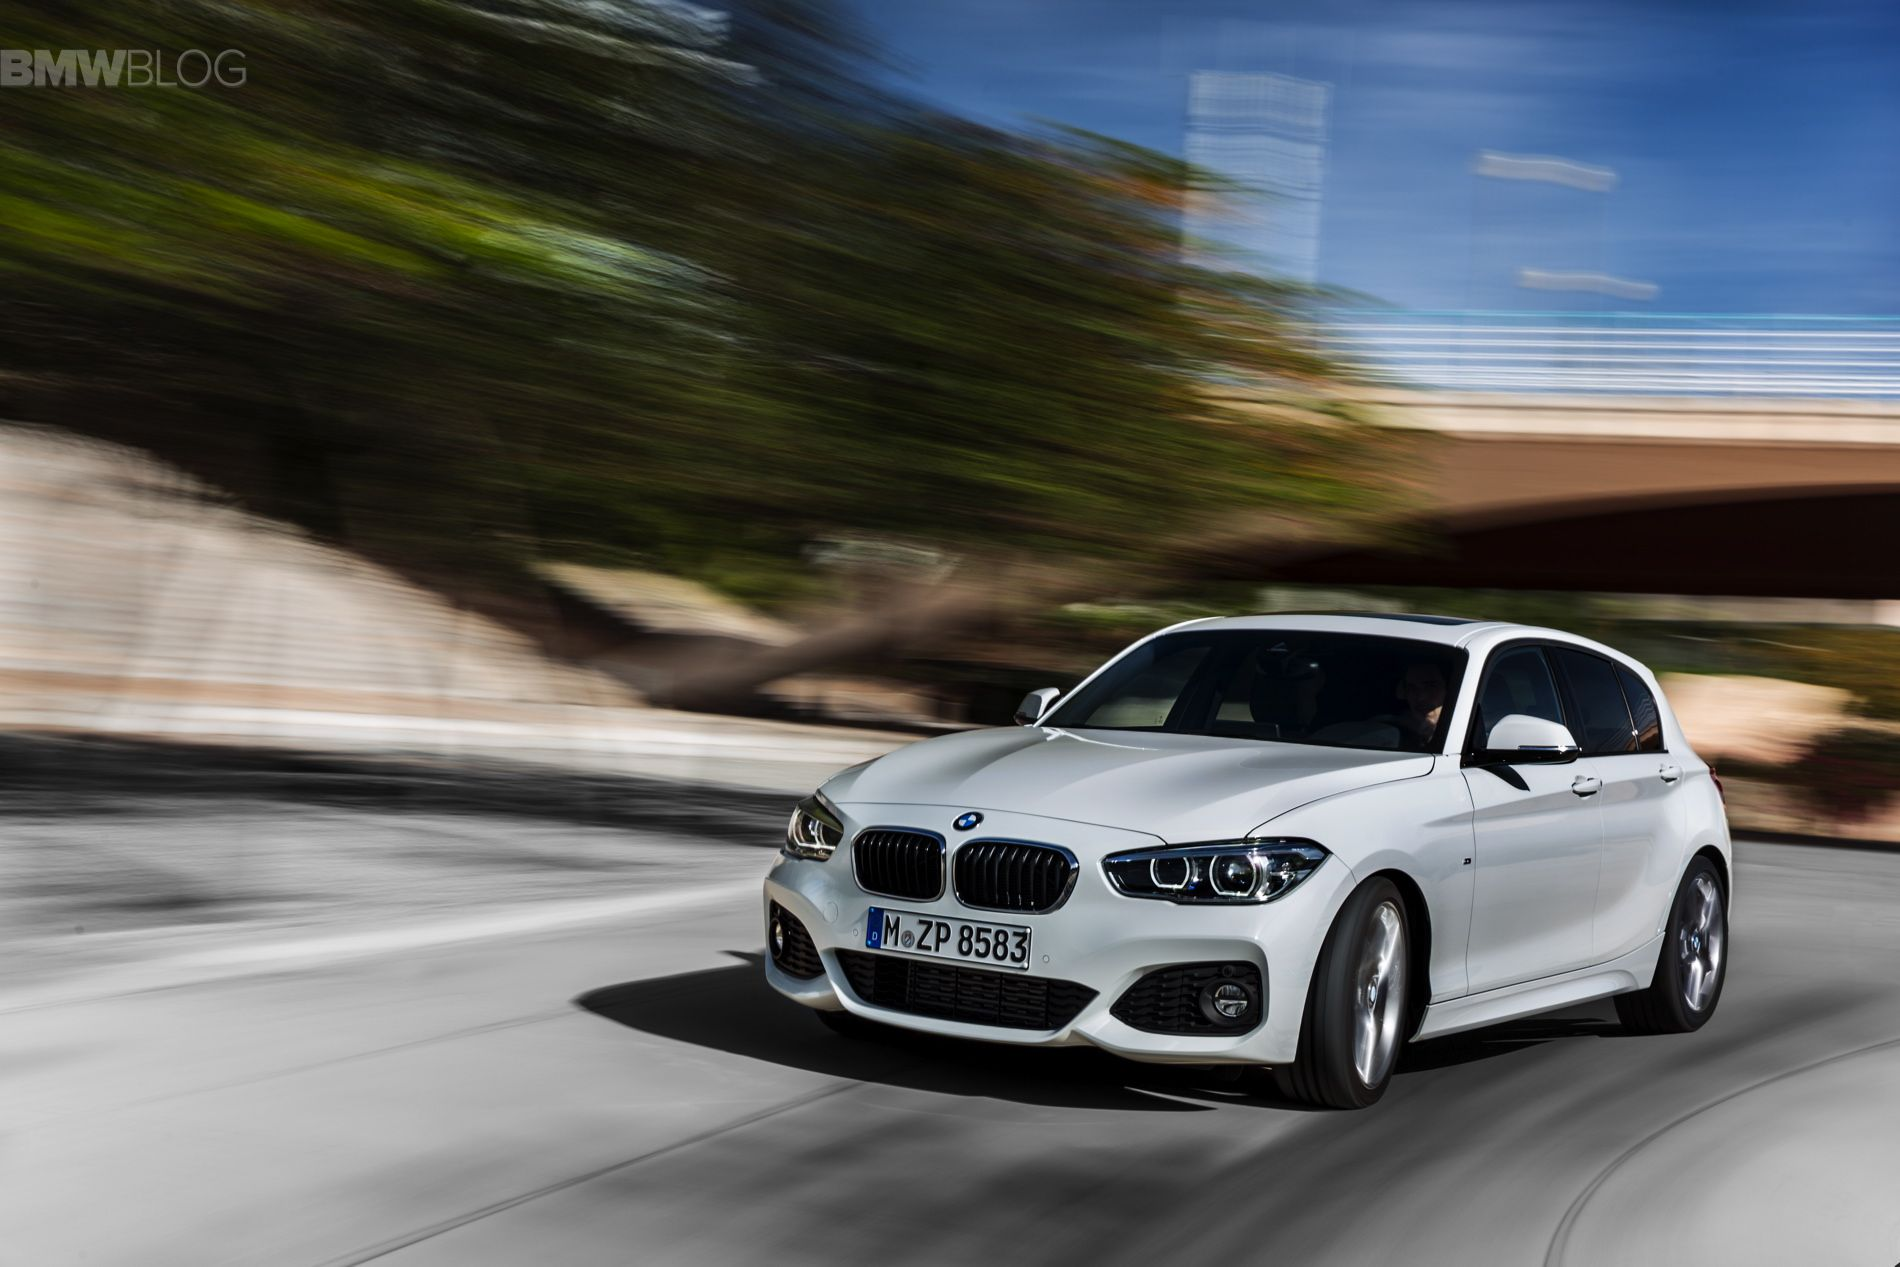 Bmw 220i gran tourer m sport package 2015 wallpapers and hd images - 2015 Bmw 1 Series M Sport Images 11 2015 Bmw 1 Series Facelift With M Sport Package